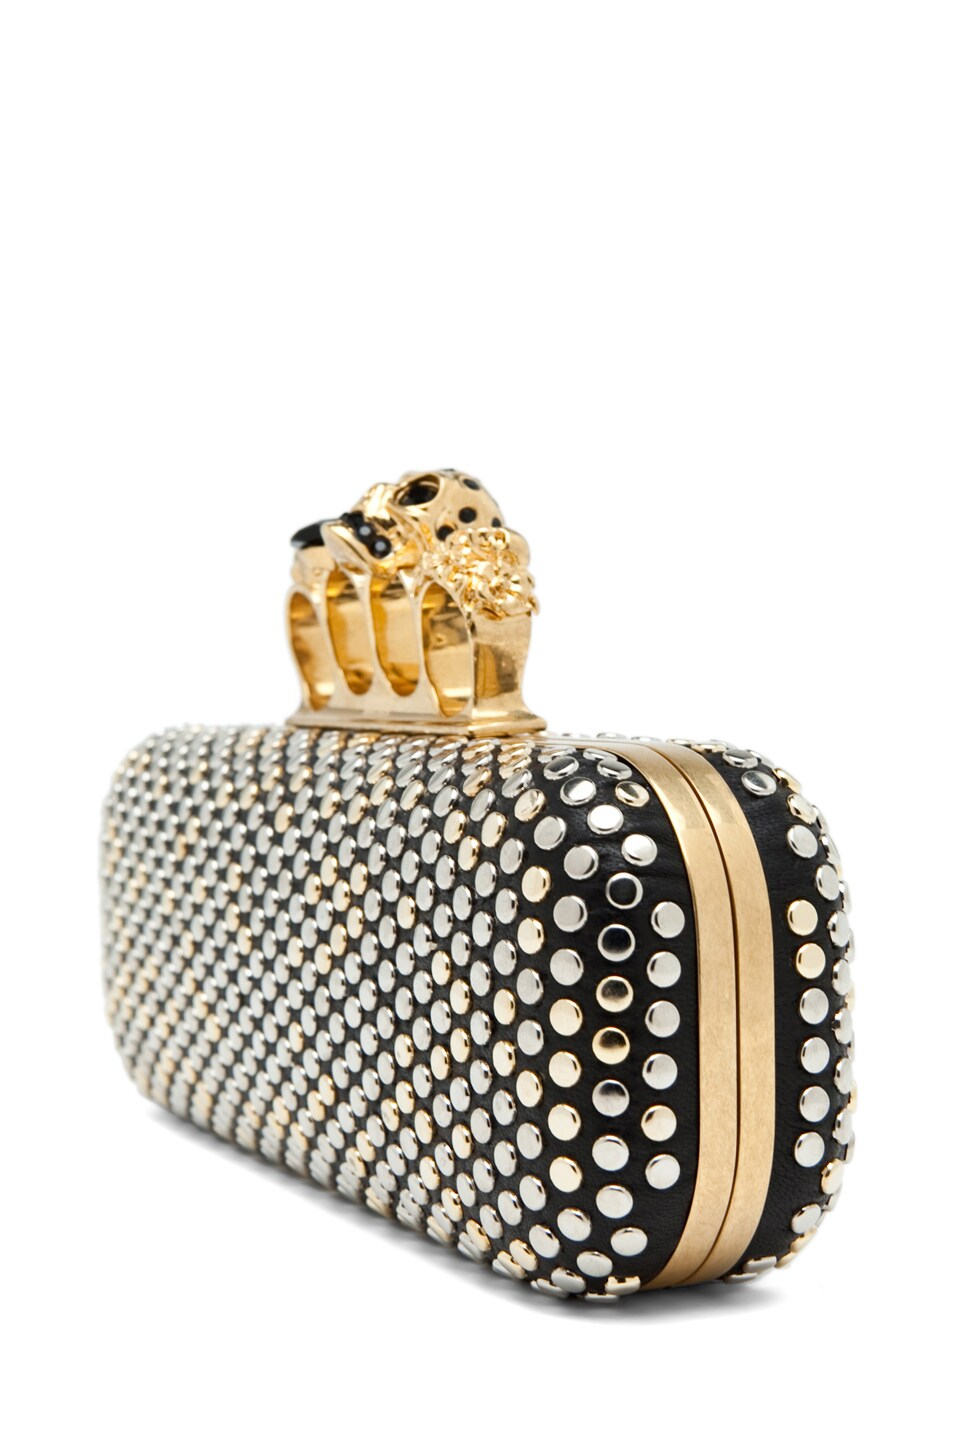 Image 3 of Alexander McQueen Knuckle Box Clutch in Black